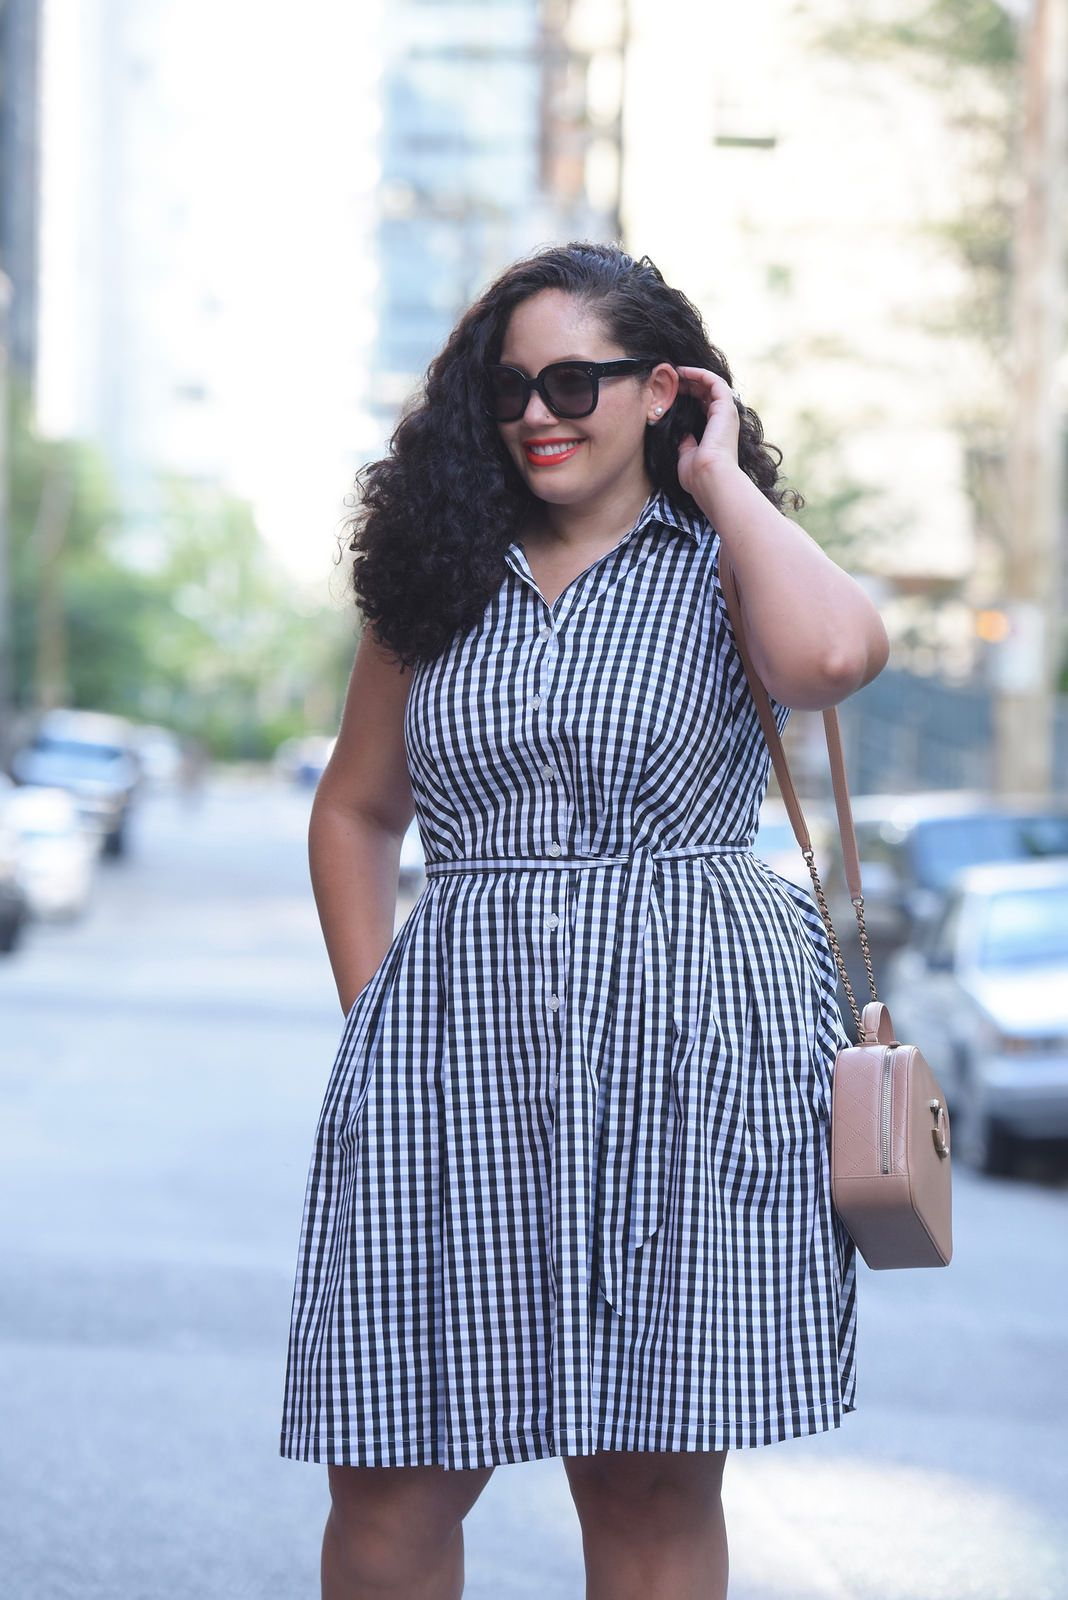 Color printing downtown vancouver - Gingham In The City Downtown Vancouvergirl